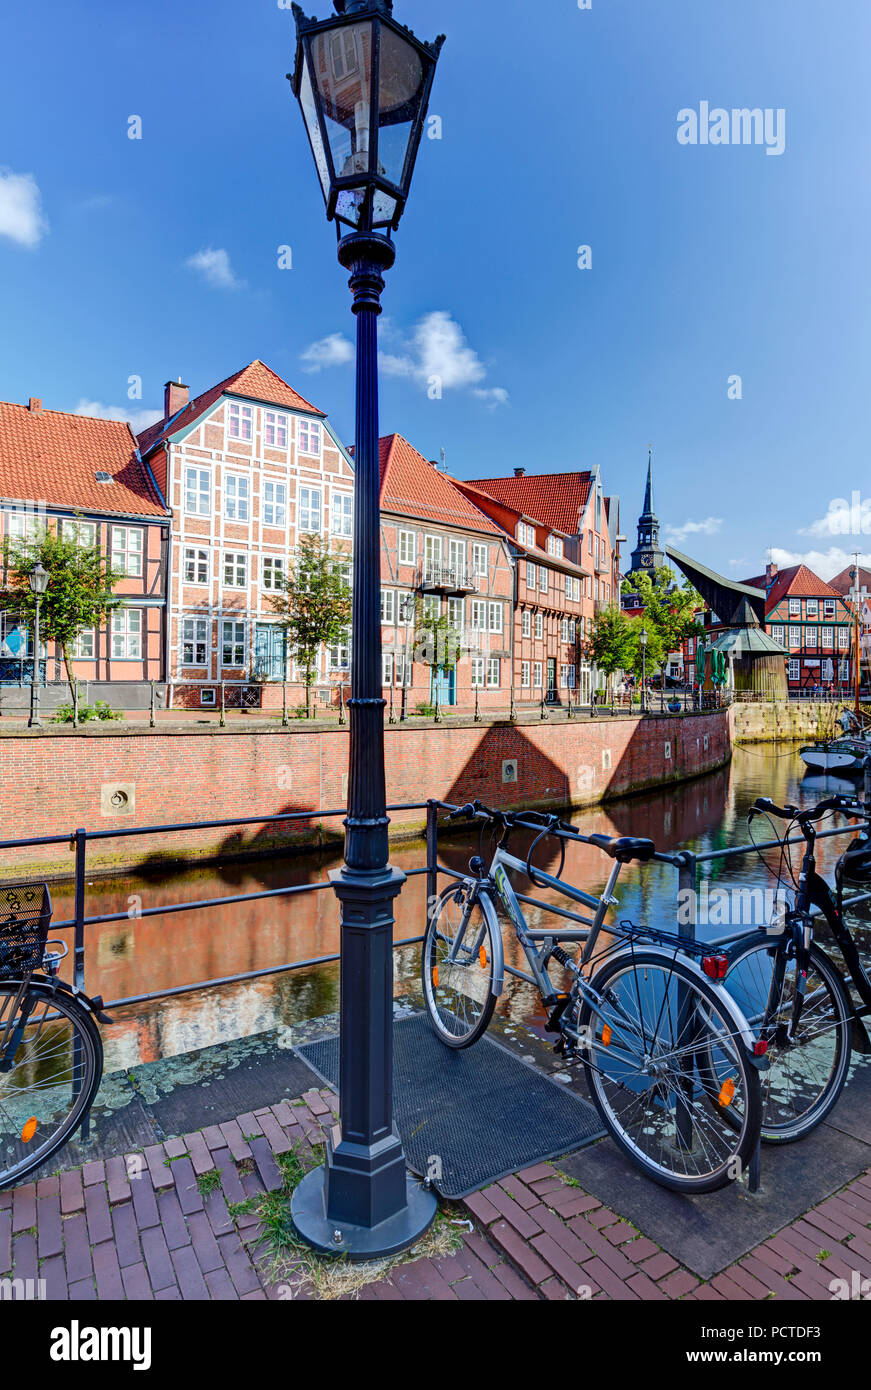 Bicycles at Hanse harbour, half-timbered houses, Stade, Altes Land, Niederelbe, Lower Saxony, Northern Germany, Germany, Europe - Stock Image